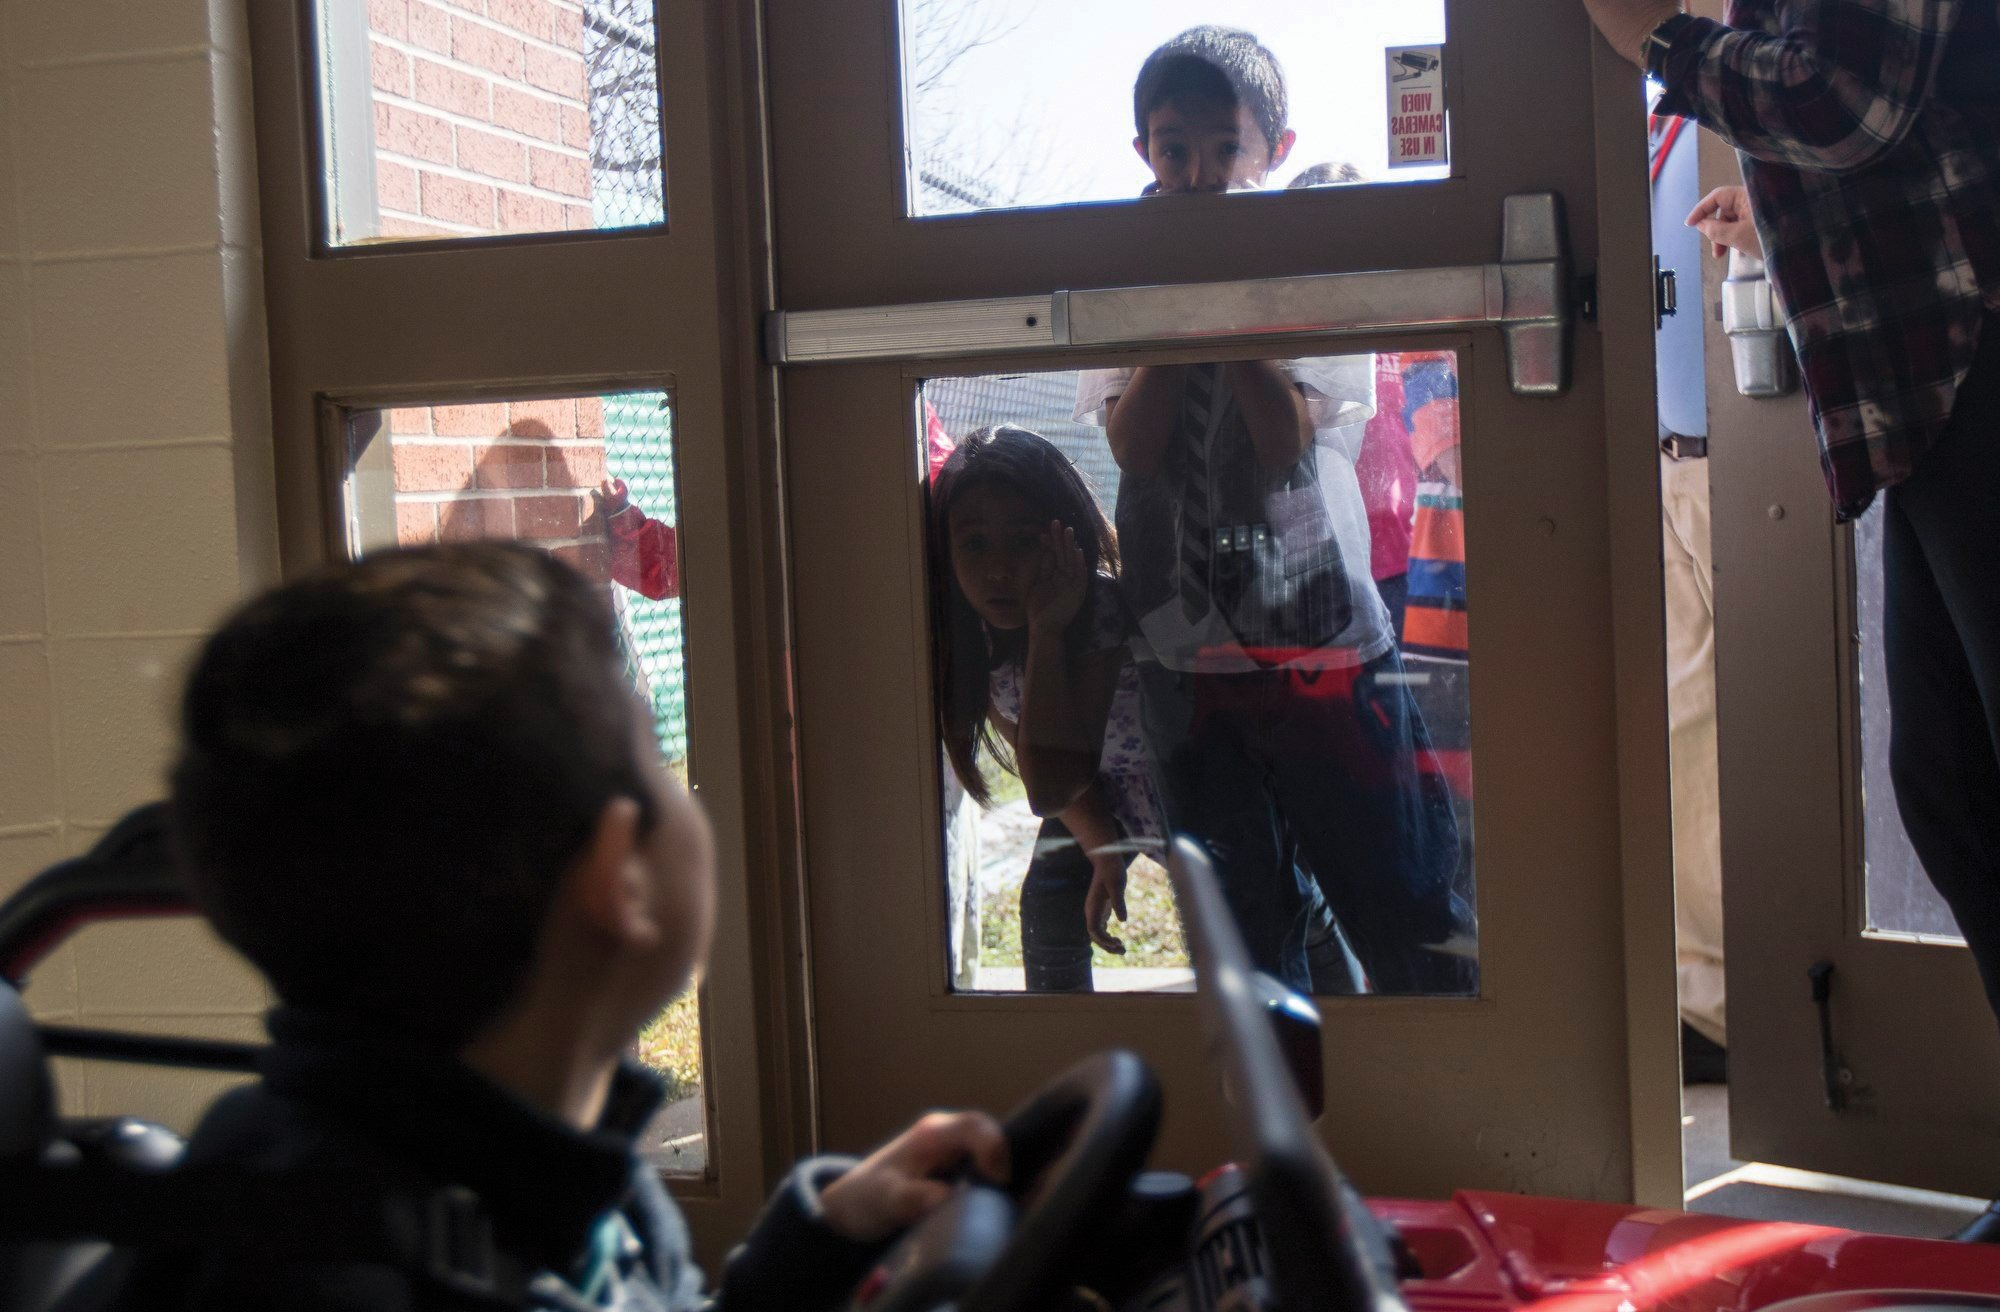 Abel Salazar, 4, drives a battery-operated Jeep in the halls of Dudley Elementary School. Third-grade students press their faces against a glass door to watch the Go Baby Go Jeep drive past. photo Angela Piazza, Victoria Advocate